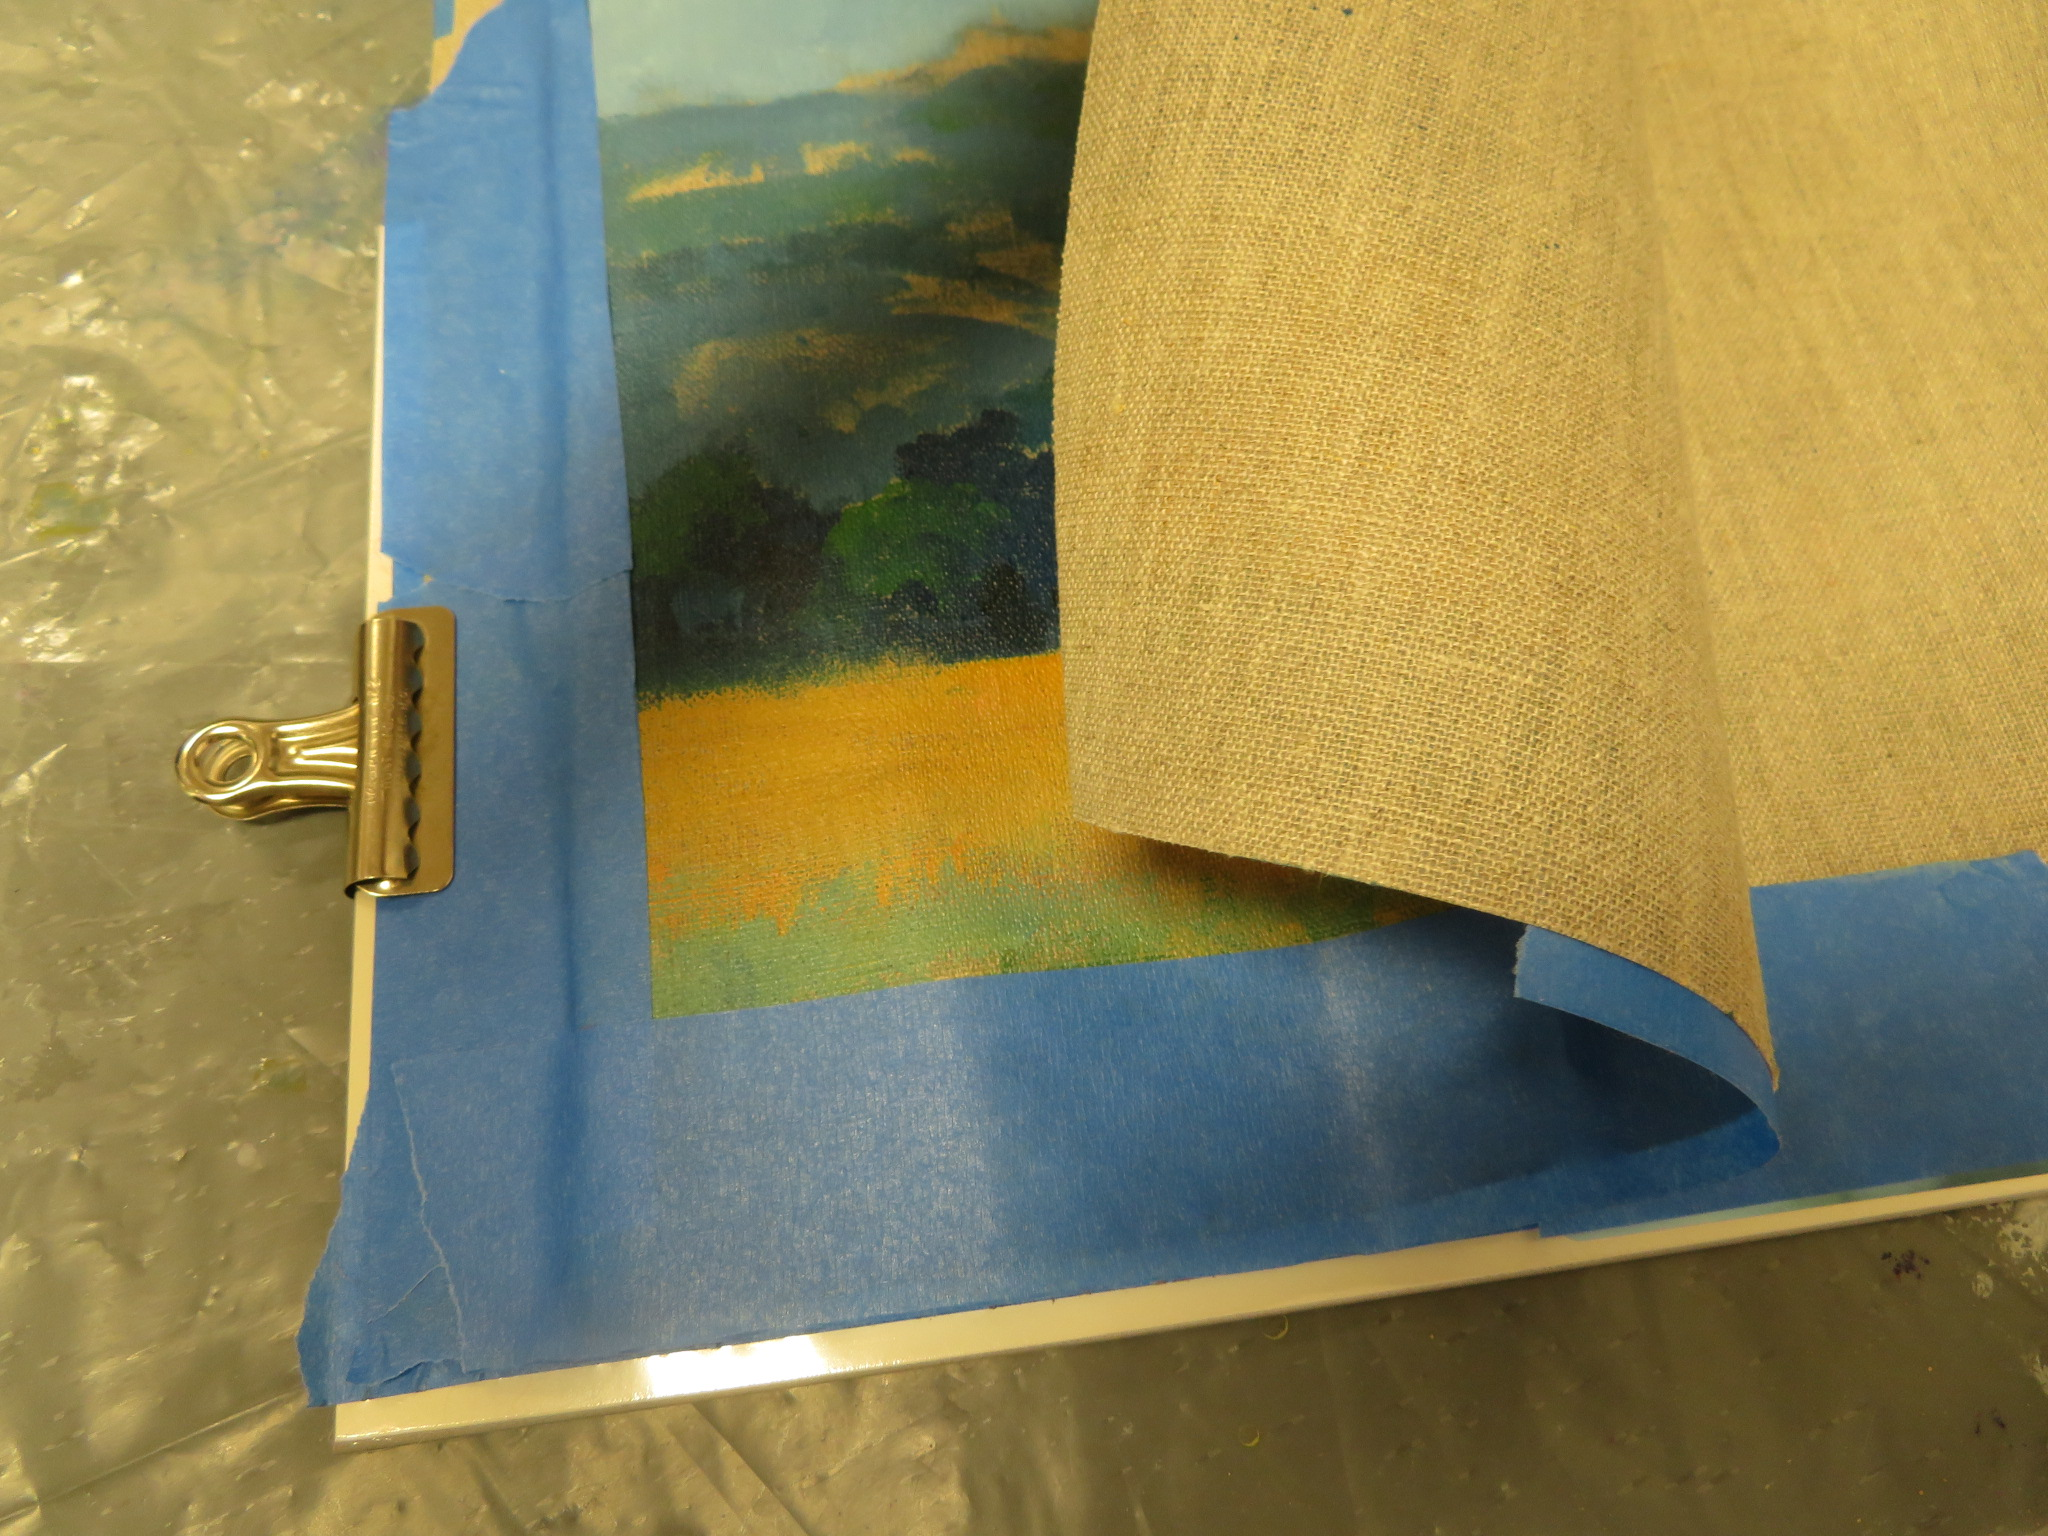 Image 10.  Tape blank canvases on top of each other. After painting, peel the top layer off.